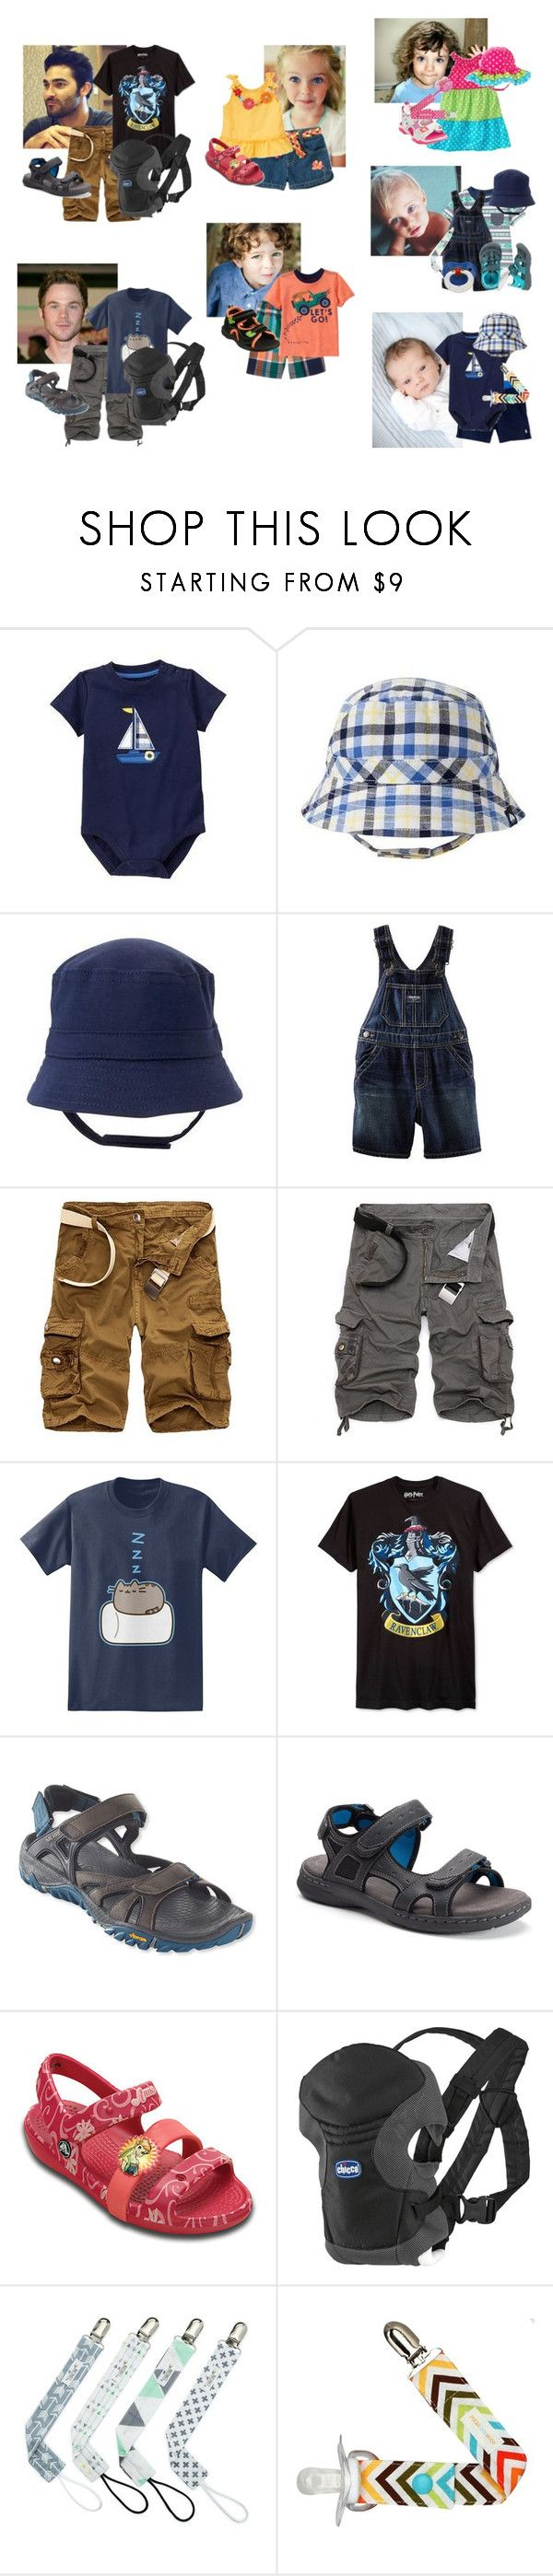 """""""Adoption Party BBQ Outfits"""" by hufflepuffdeatheater ❤ liked on Polyvore featuring Gymboree, Ralph Lauren, Pusheen, Bioworld, Merrell, Croft & Barrow, Disney and CHICCO"""